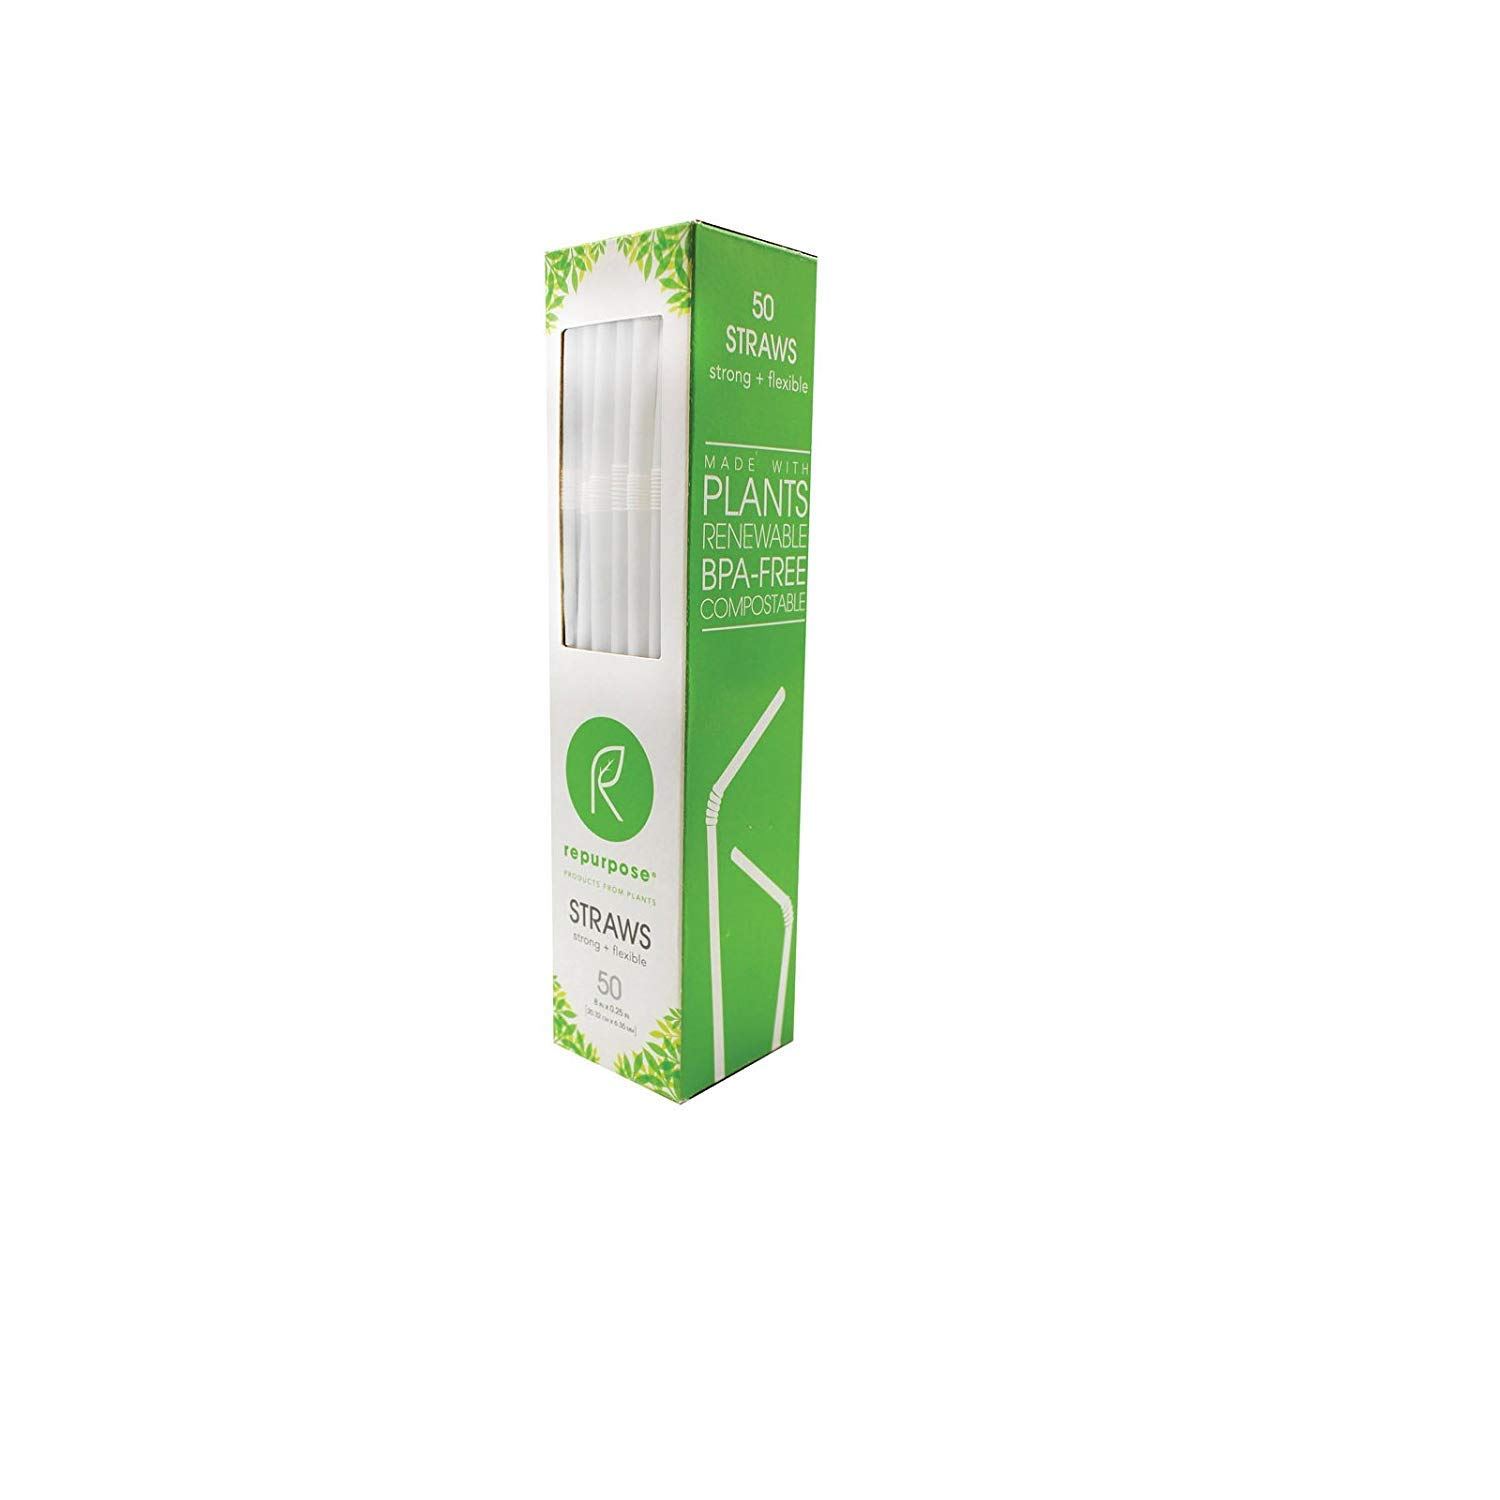 Repurpose 2173458 Compostable Straws - Case of 20 & 50 Count